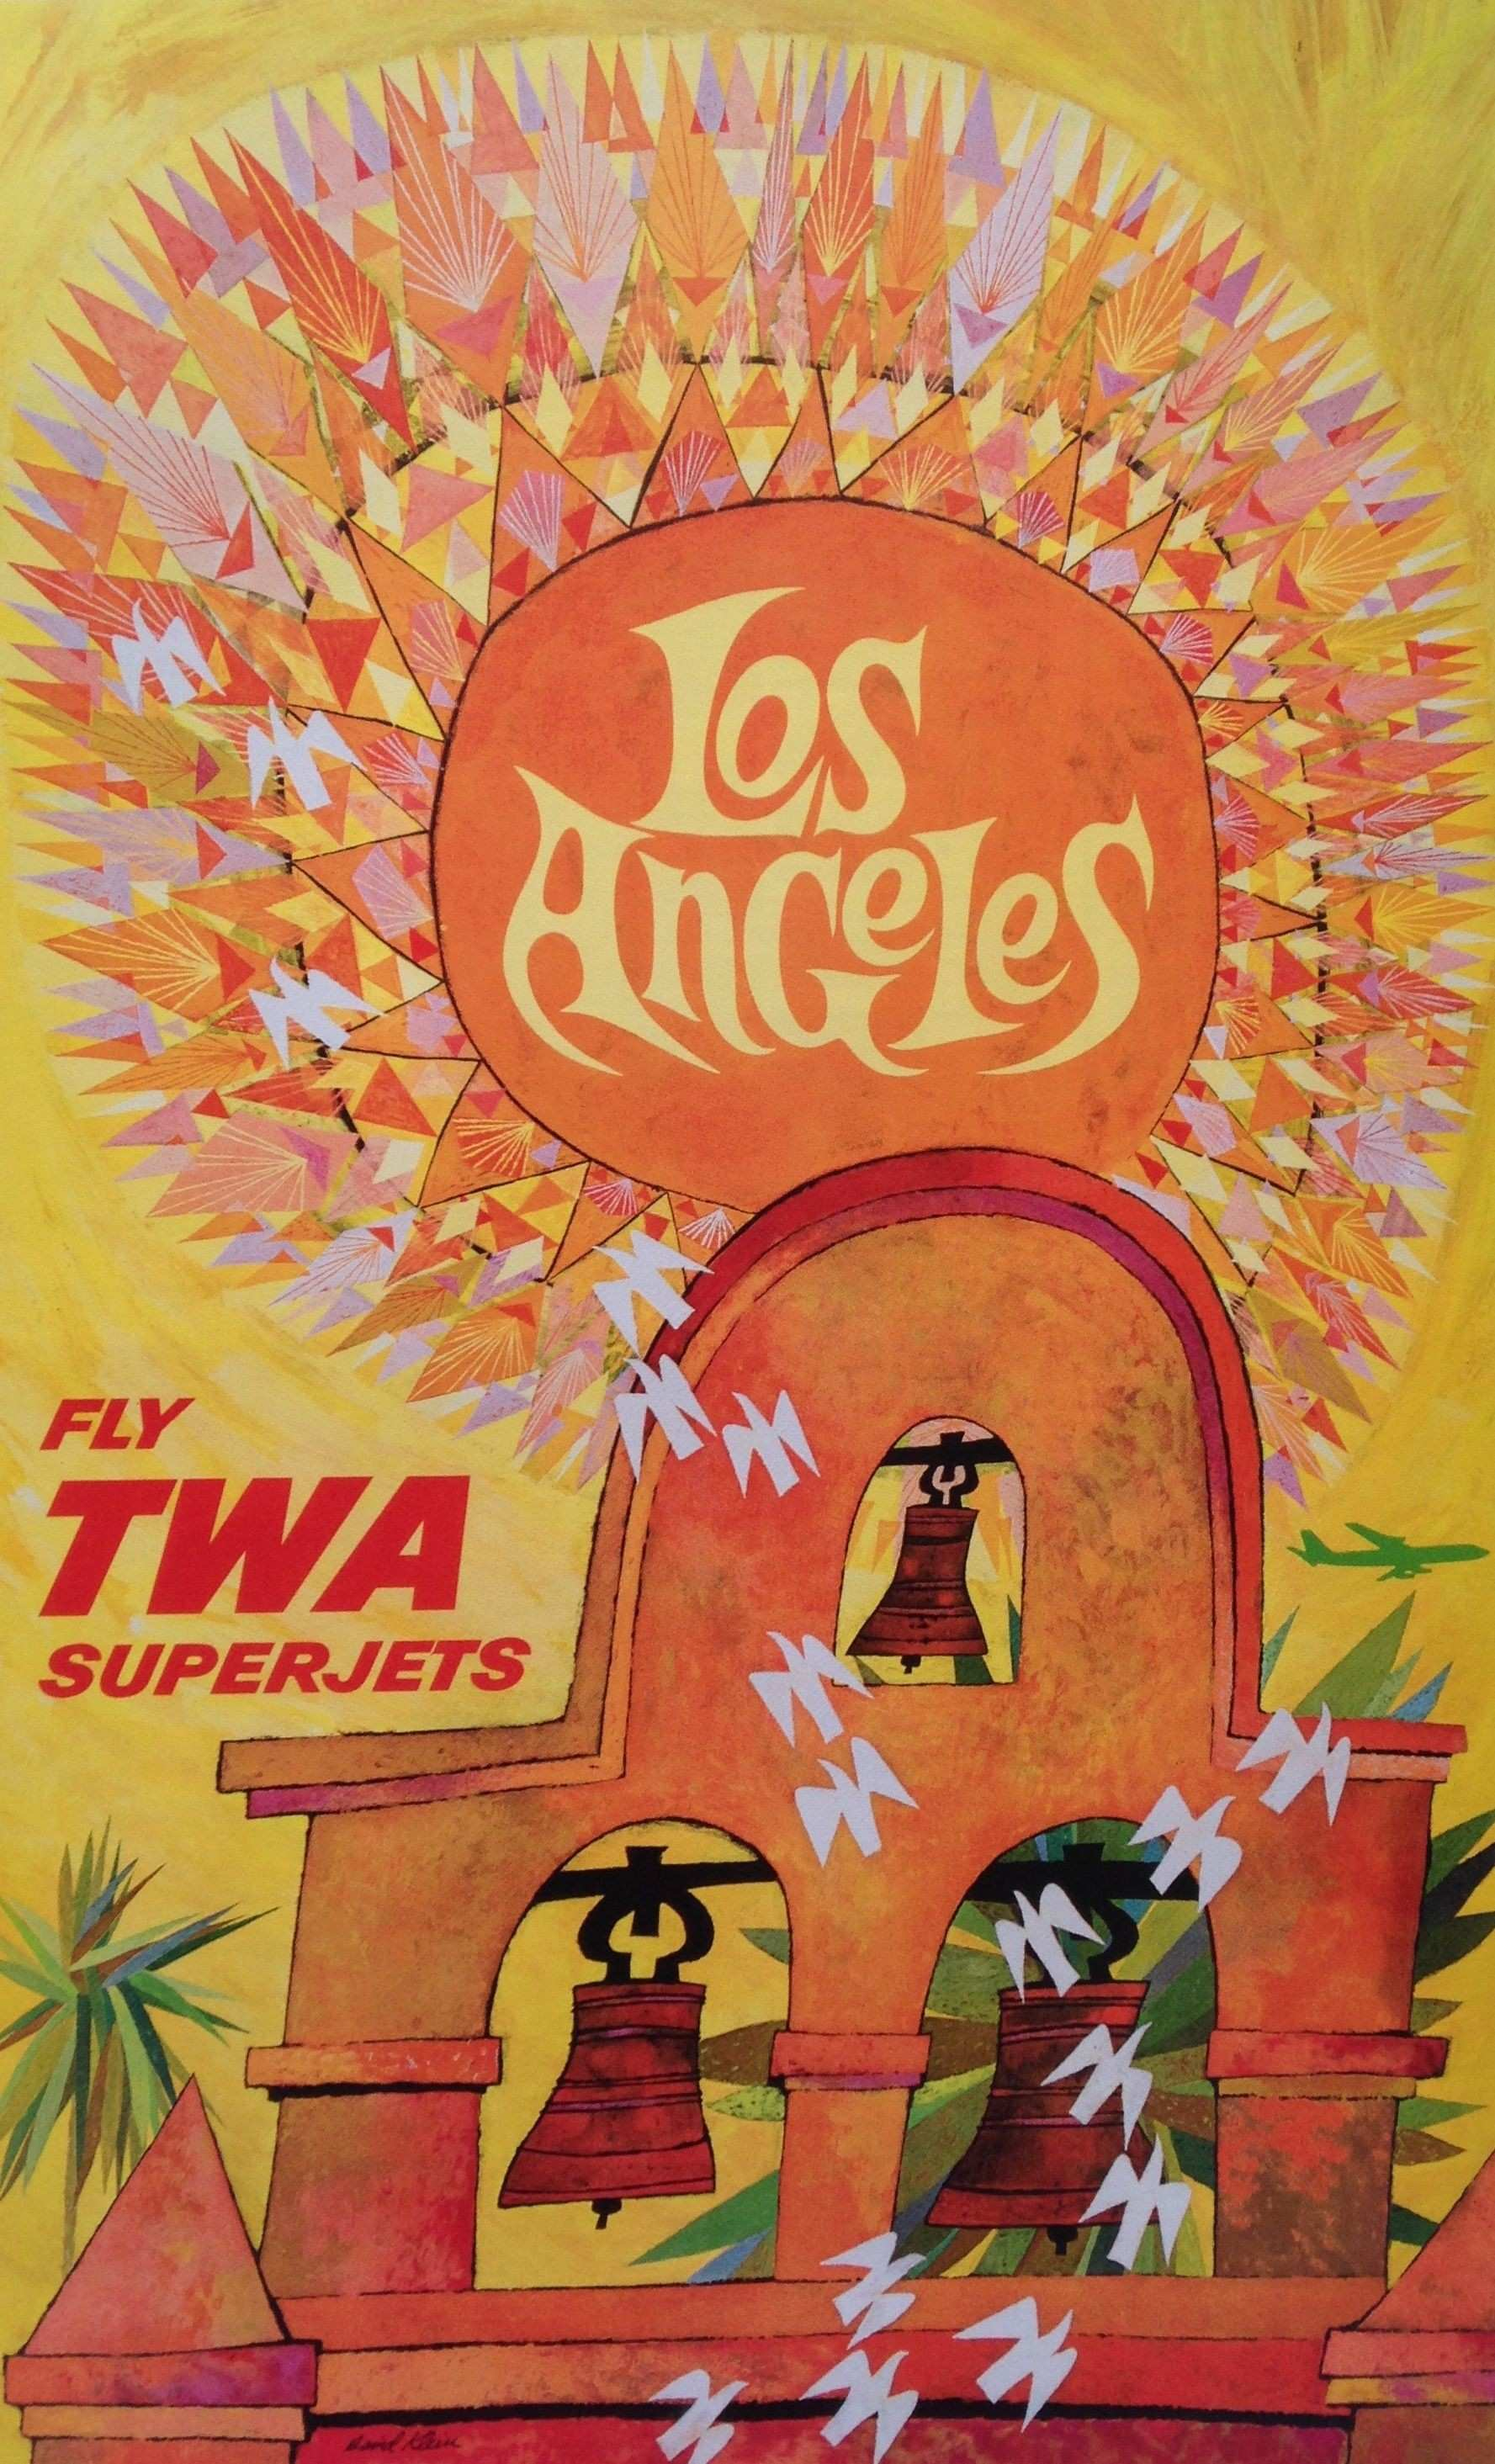 vintage travel poster by David Klein at LACMA